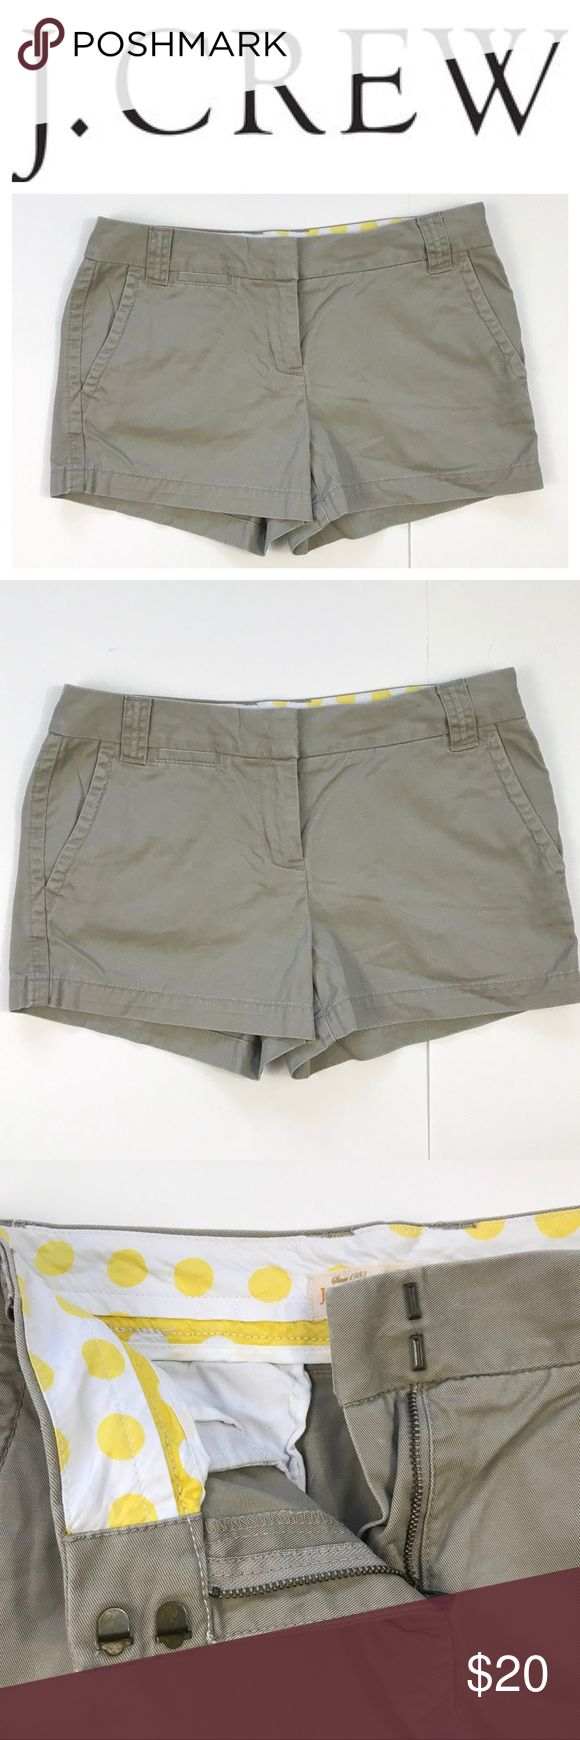 "J Crew Chino Women's City Fit Beige Khaki Shorts Excellent condition. Gently used. Size 6 • Measurements:  -Waist: 16""  -Rise: 9""  -Inseam: 3"" J. Crew Shorts"